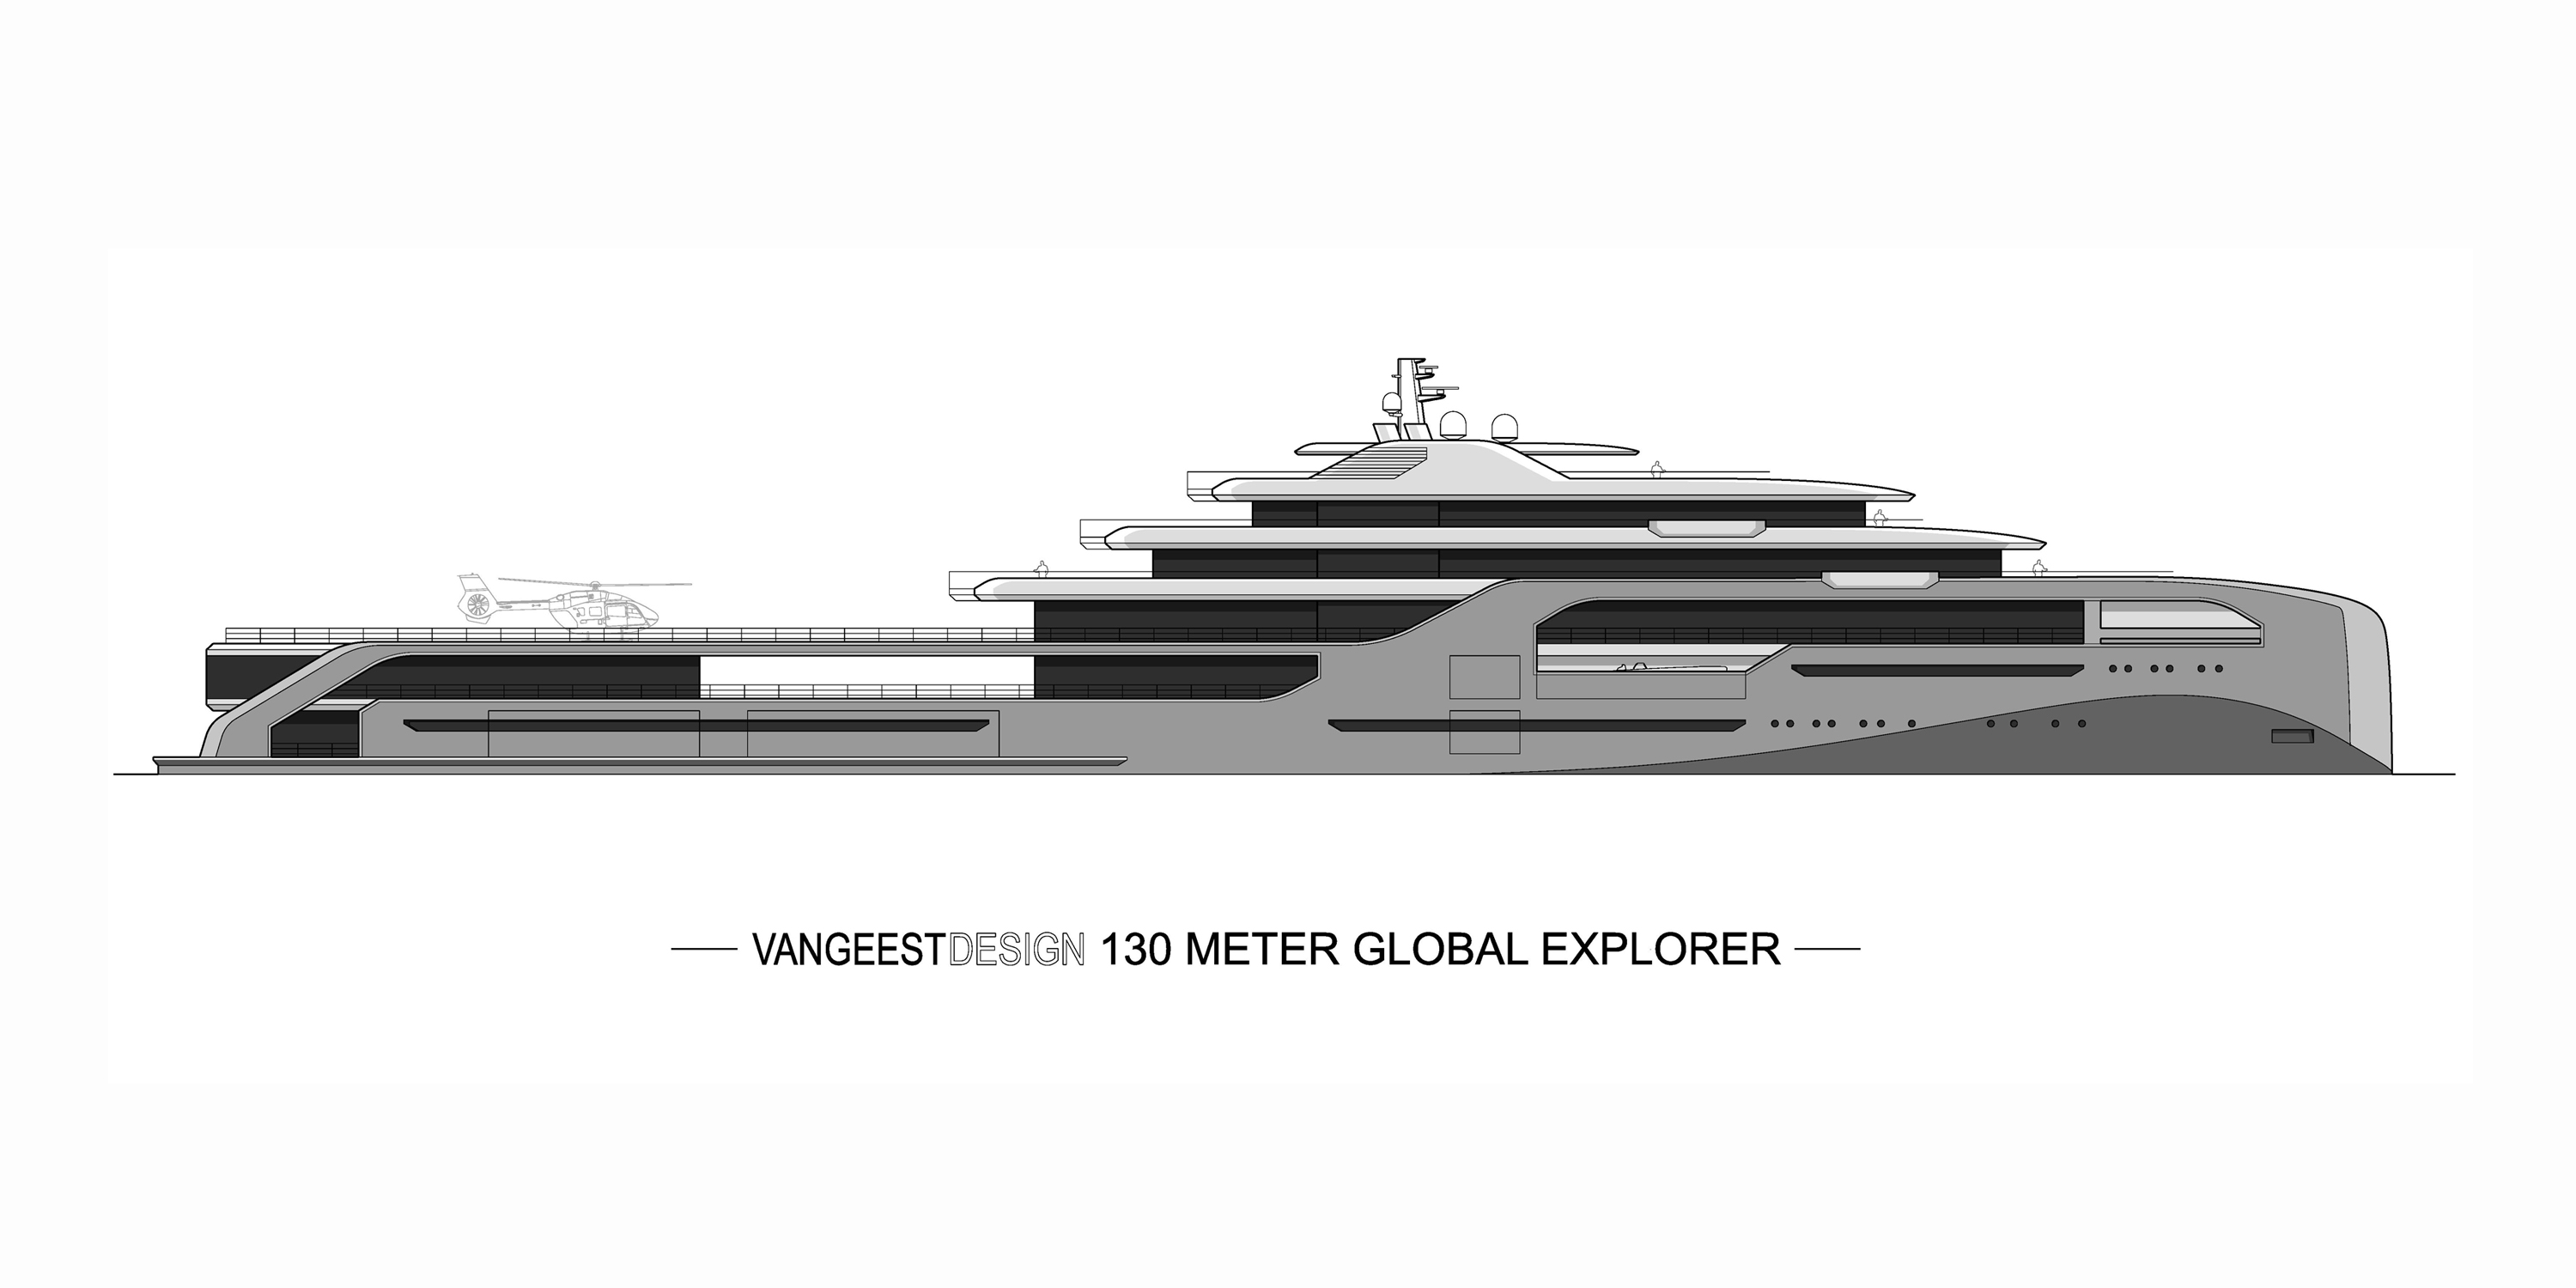 VANGEESTDESIGN-130M-EXPLORER